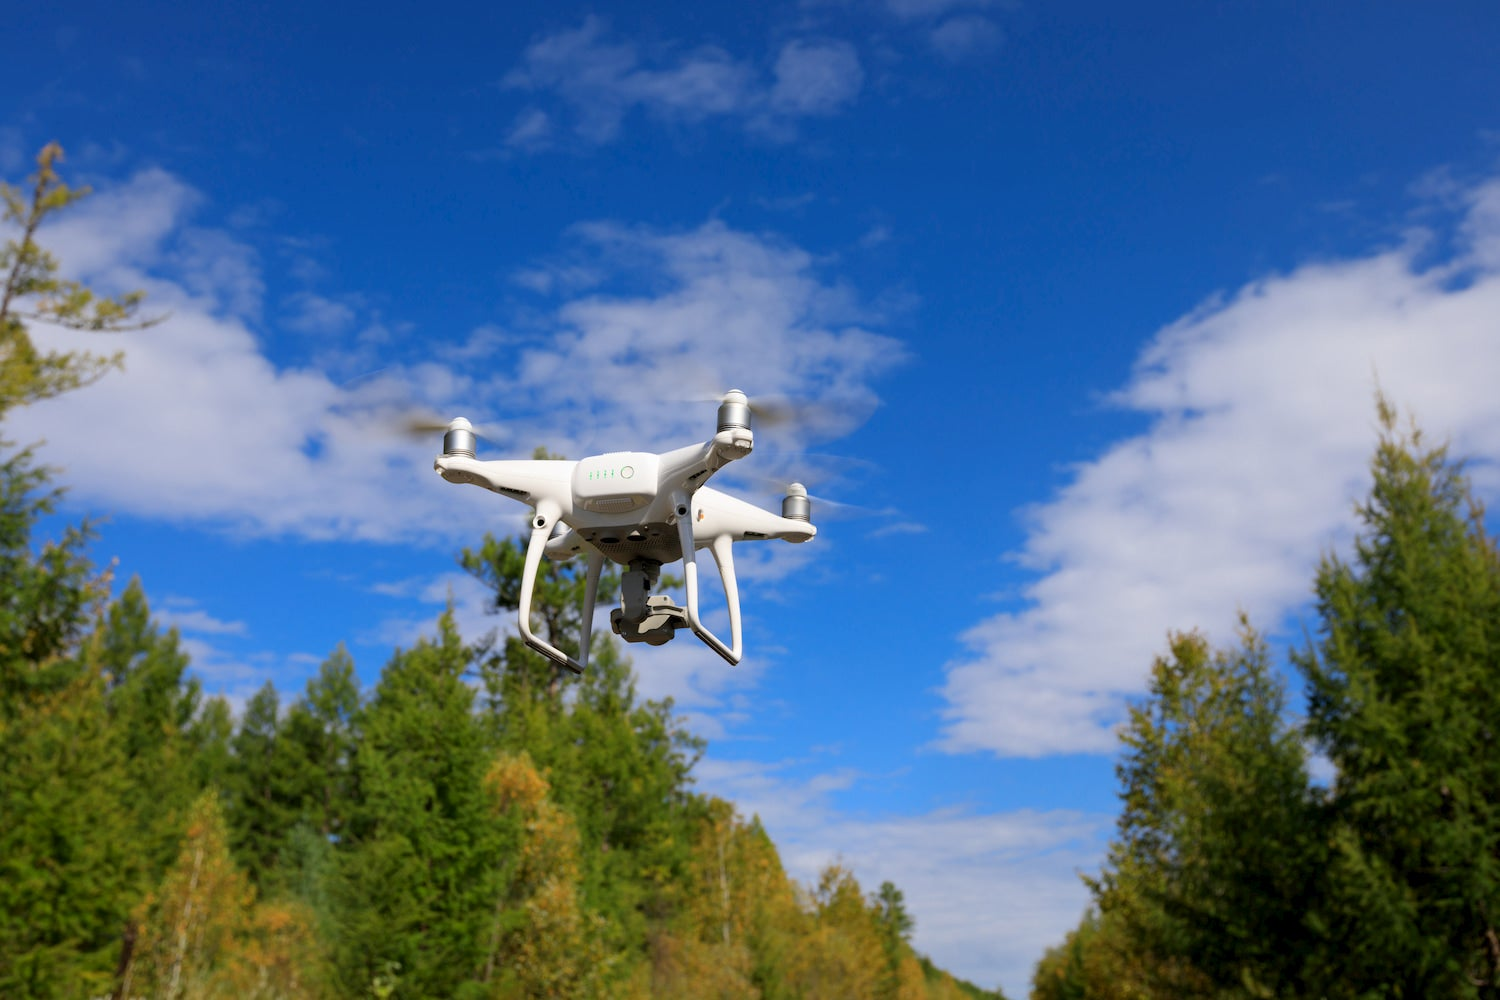 What You Should Know About Drones in National Parks